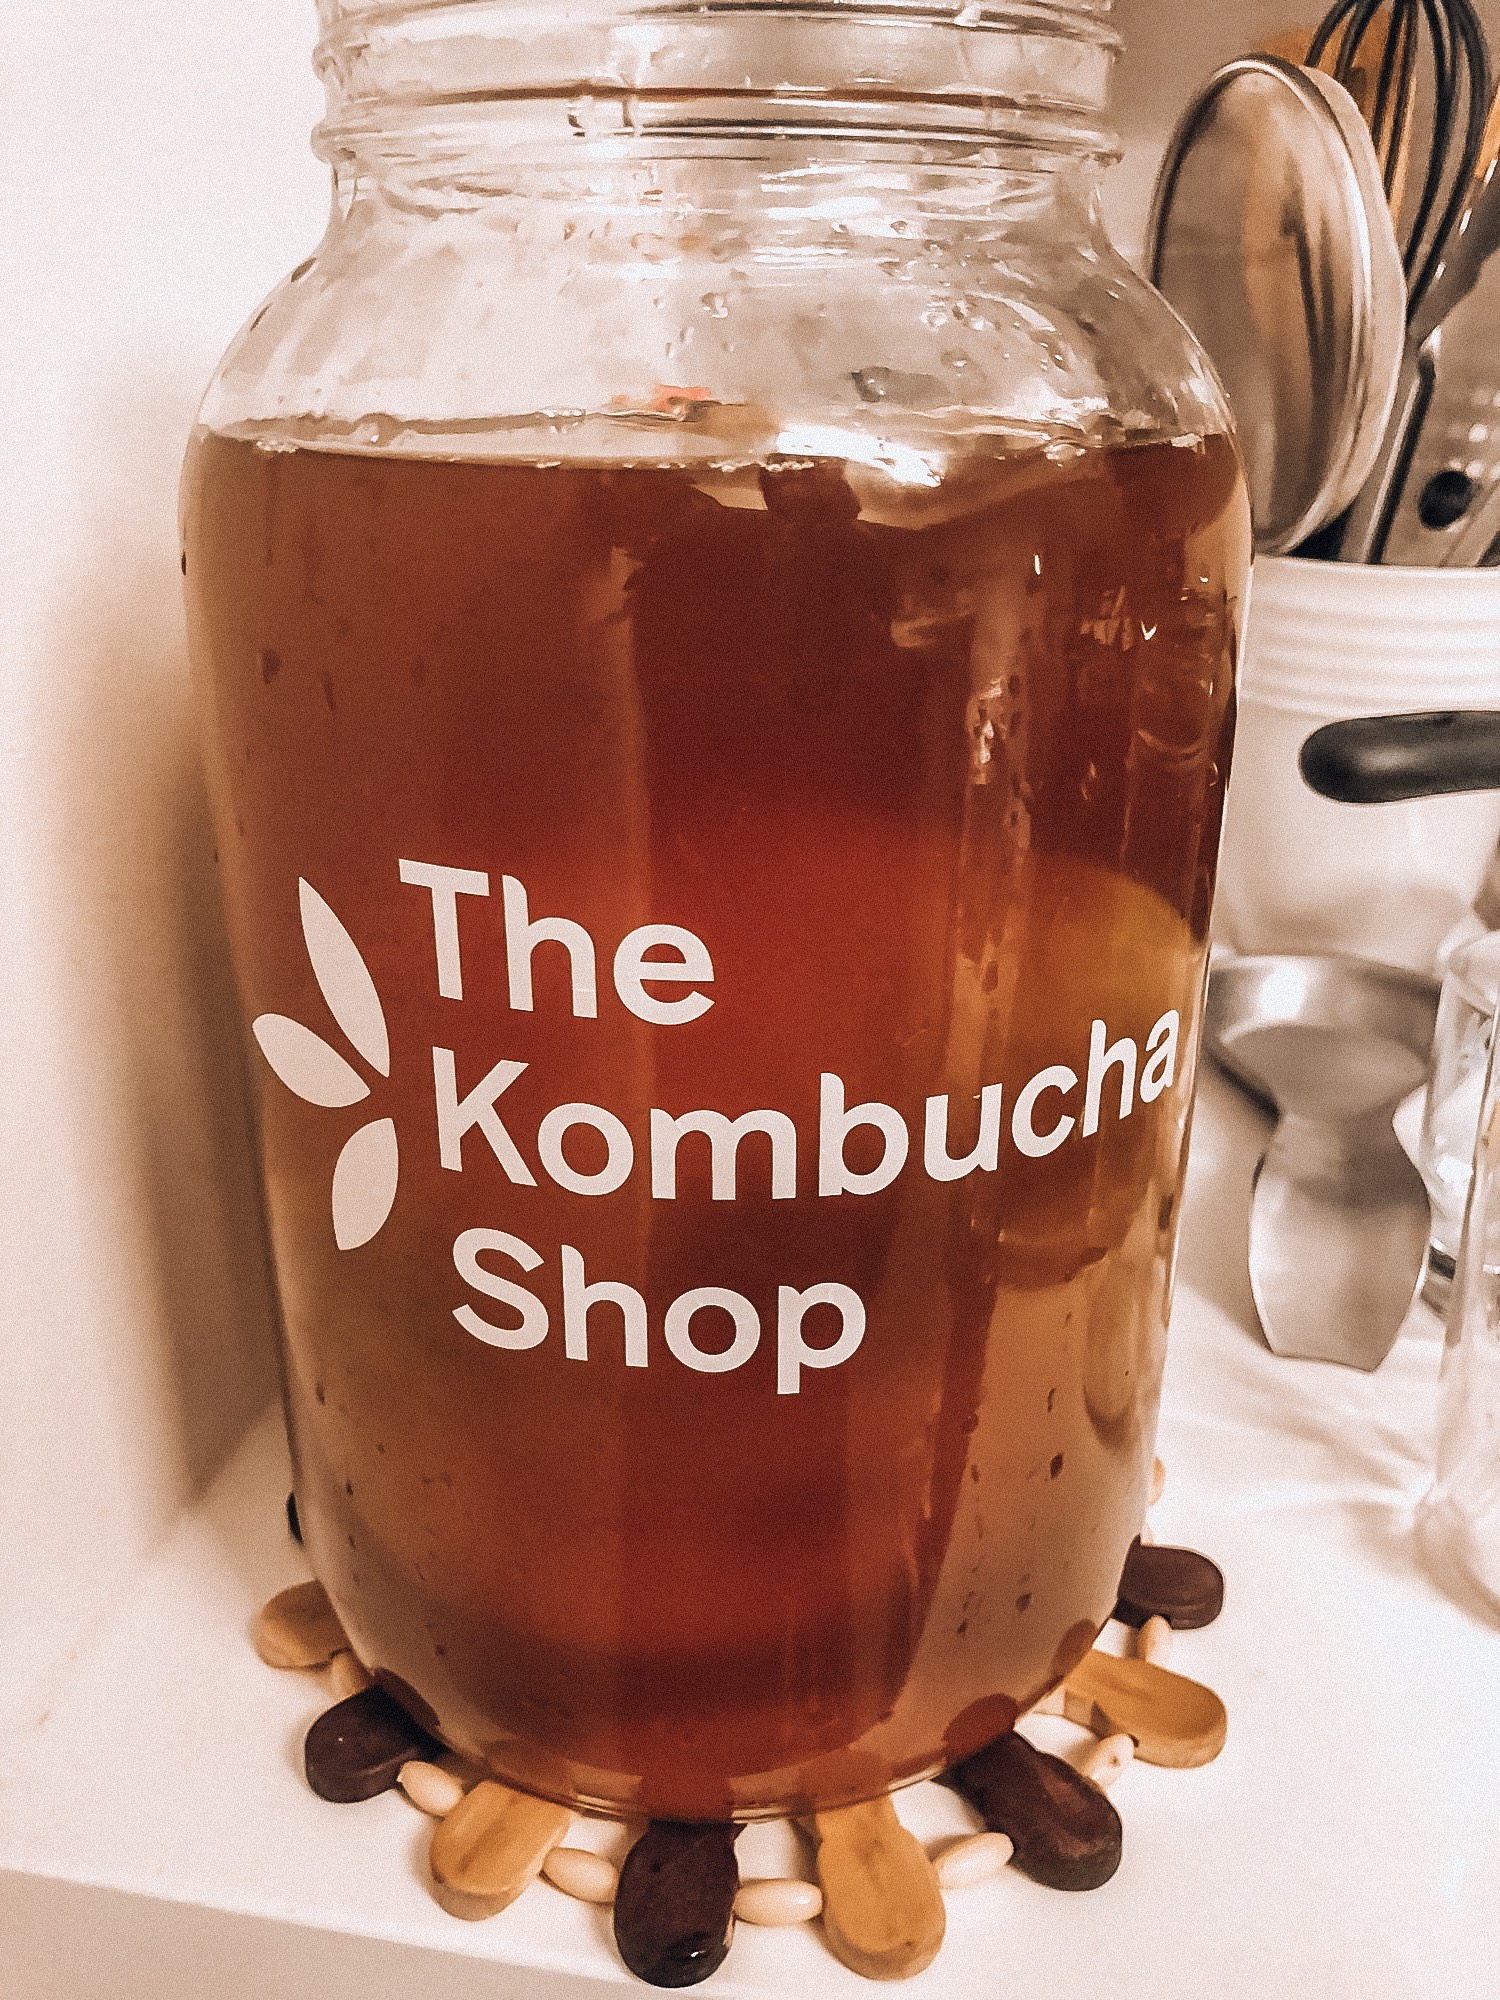 Brewing my own Kombucha